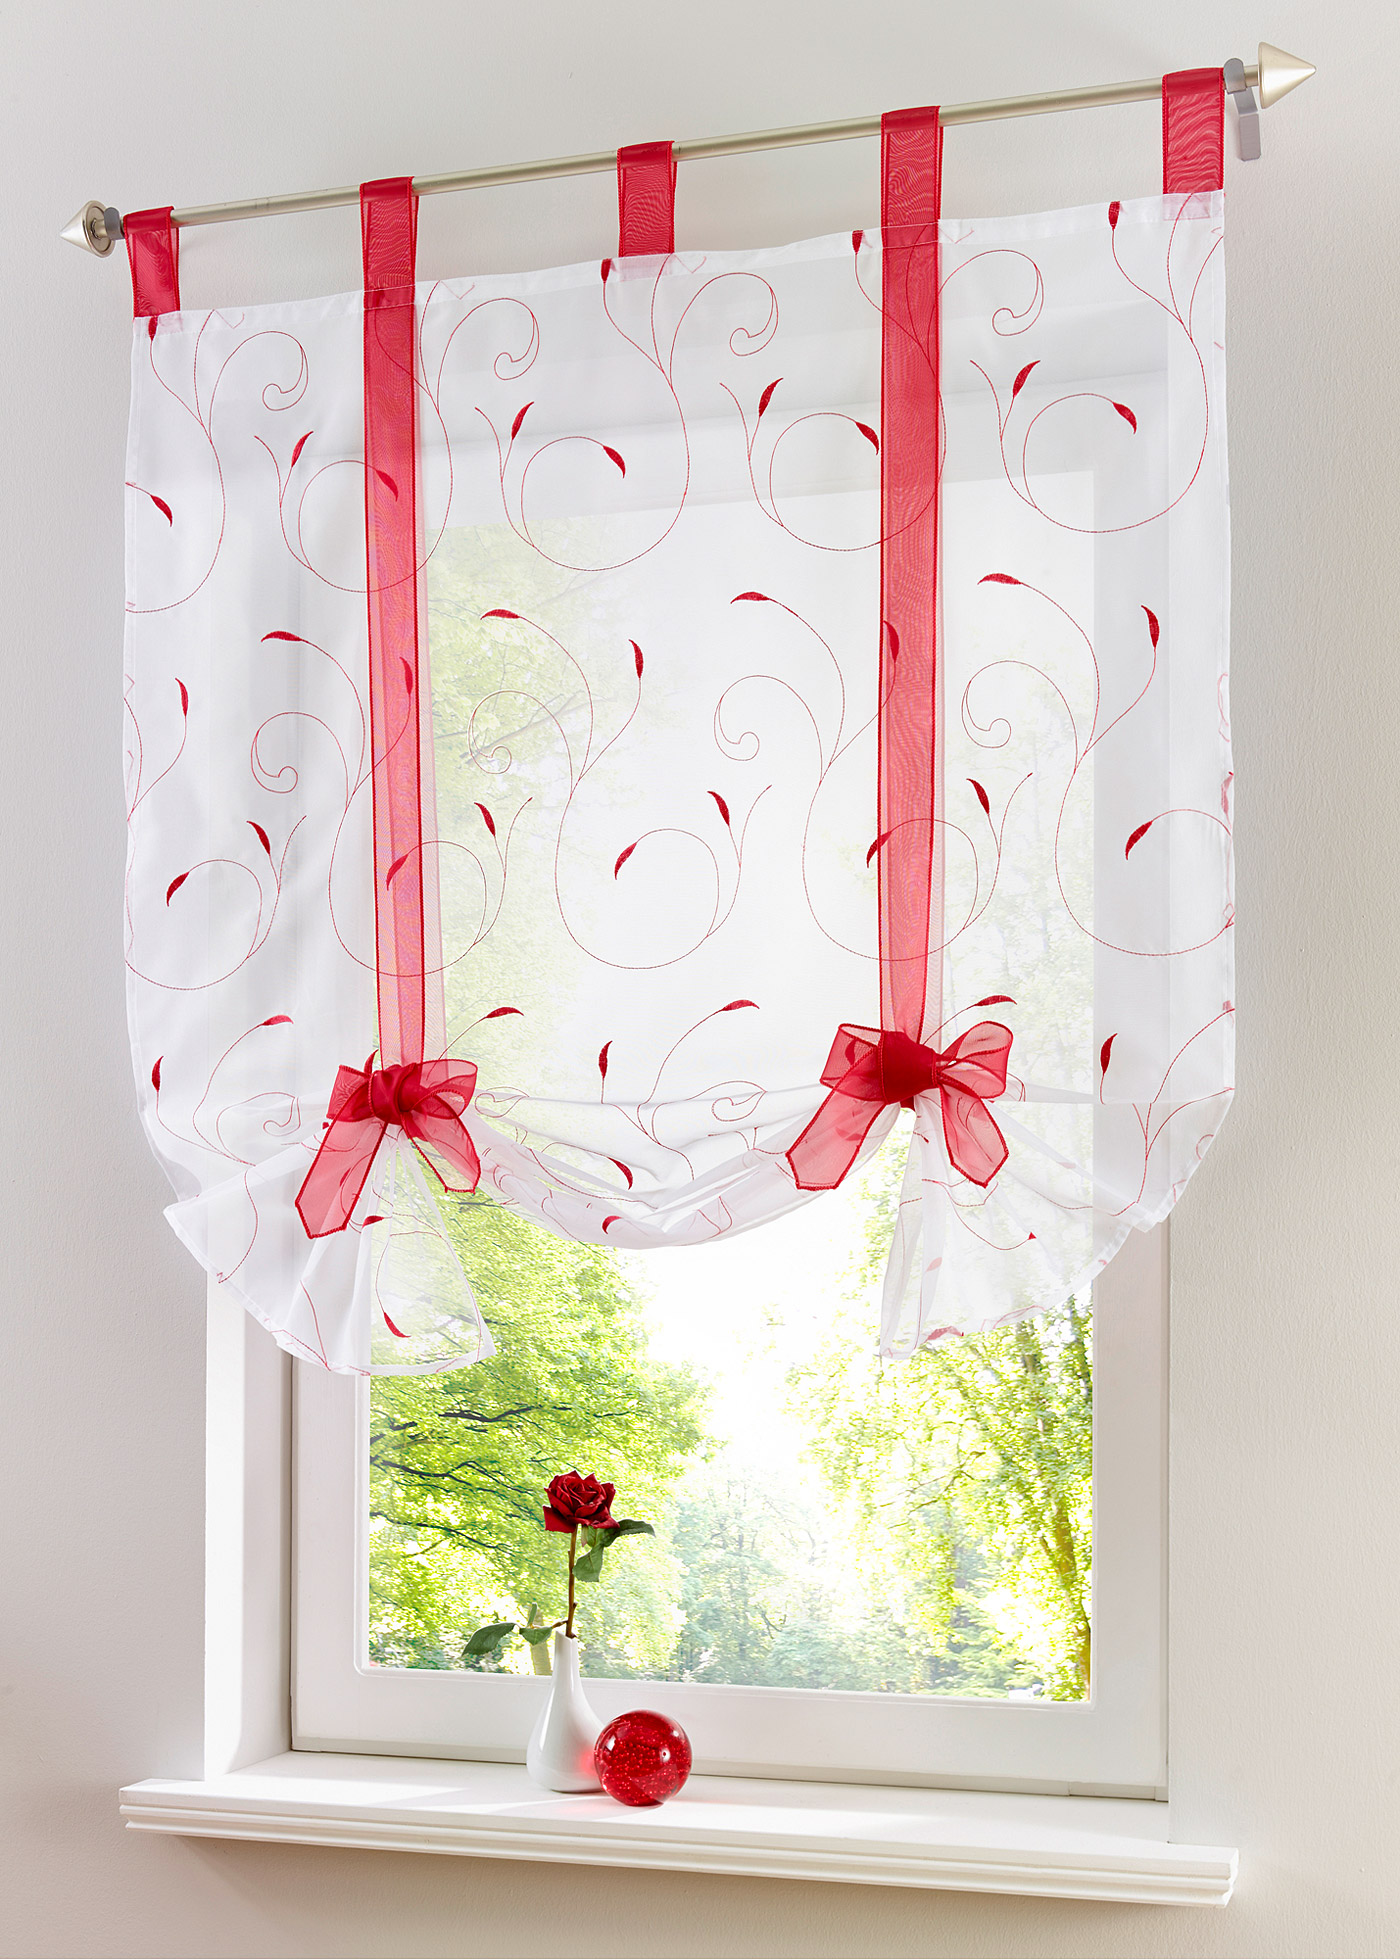 New Arrival Window Curtain Rome Cafe Kitchen Curtains Cortinas The Curtain Blinds Modern Kitchen Curtain Sheer 5 Colors Cafe Kitchen Curtains Kitchen Curtains Sheermodern Kitchen Curtains Aliexpress